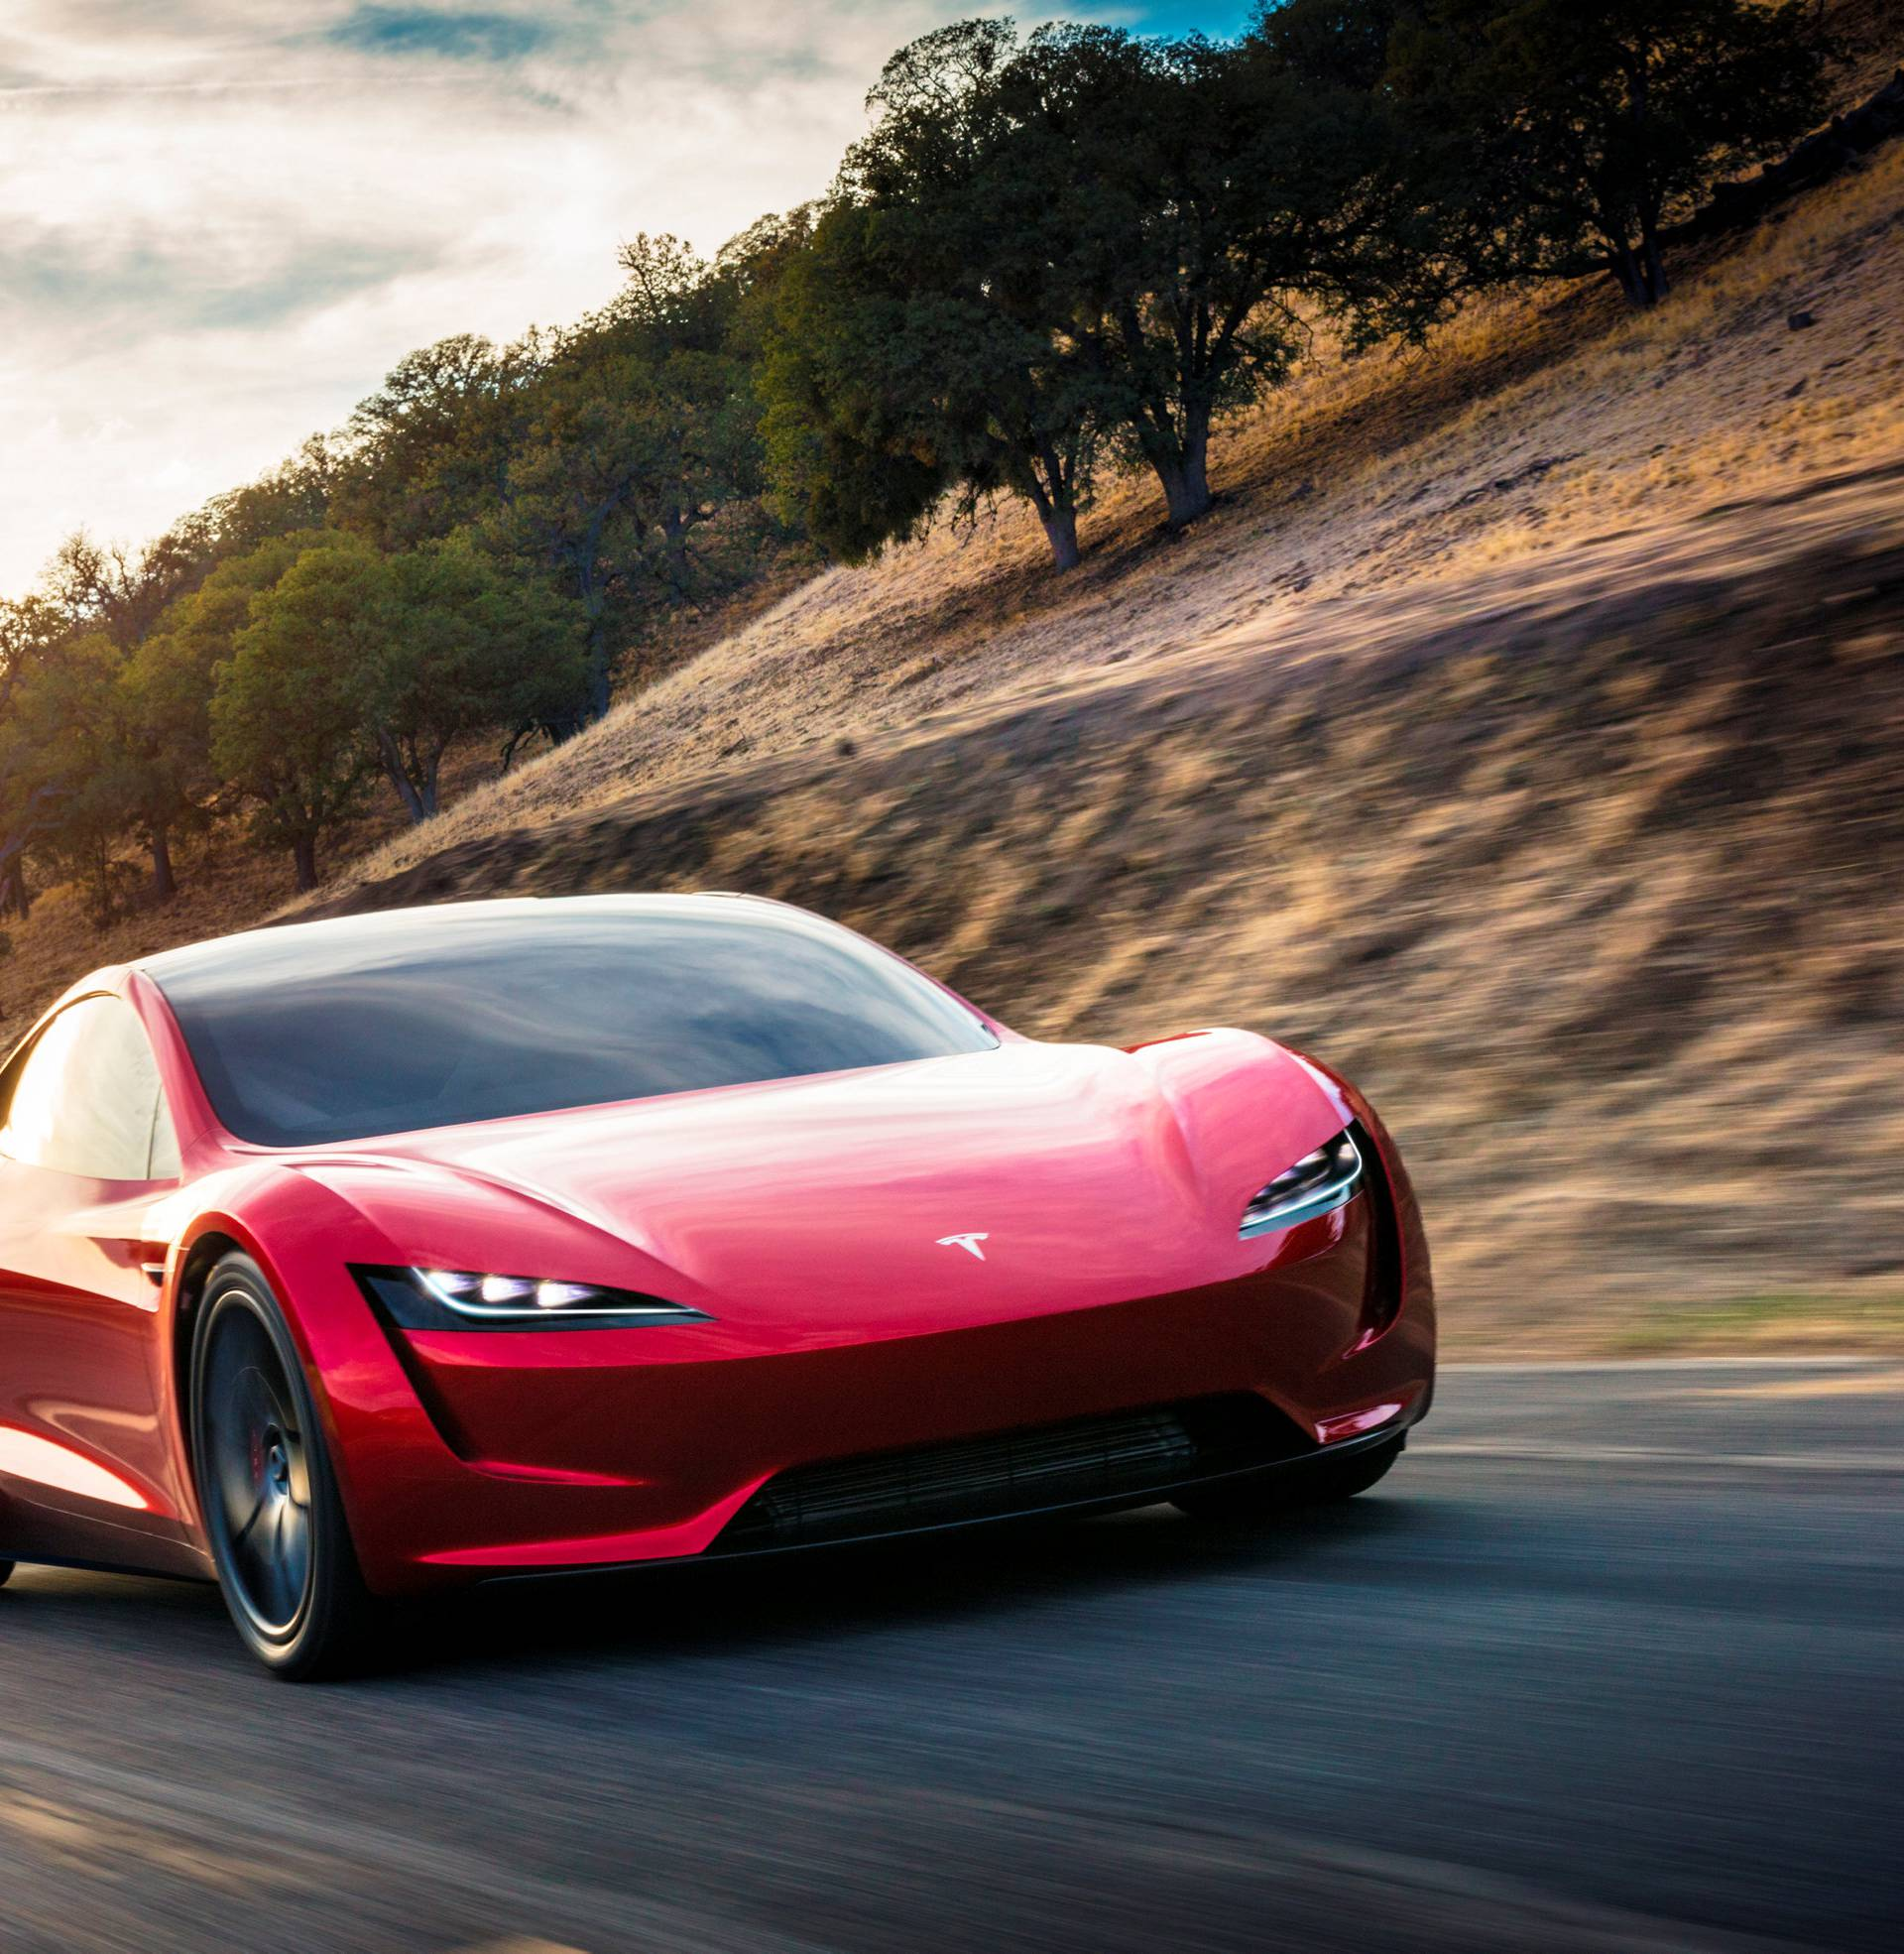 Tesla Roadster 2 is shown in this undated handout photo, during a presentation in Hawthorne, California